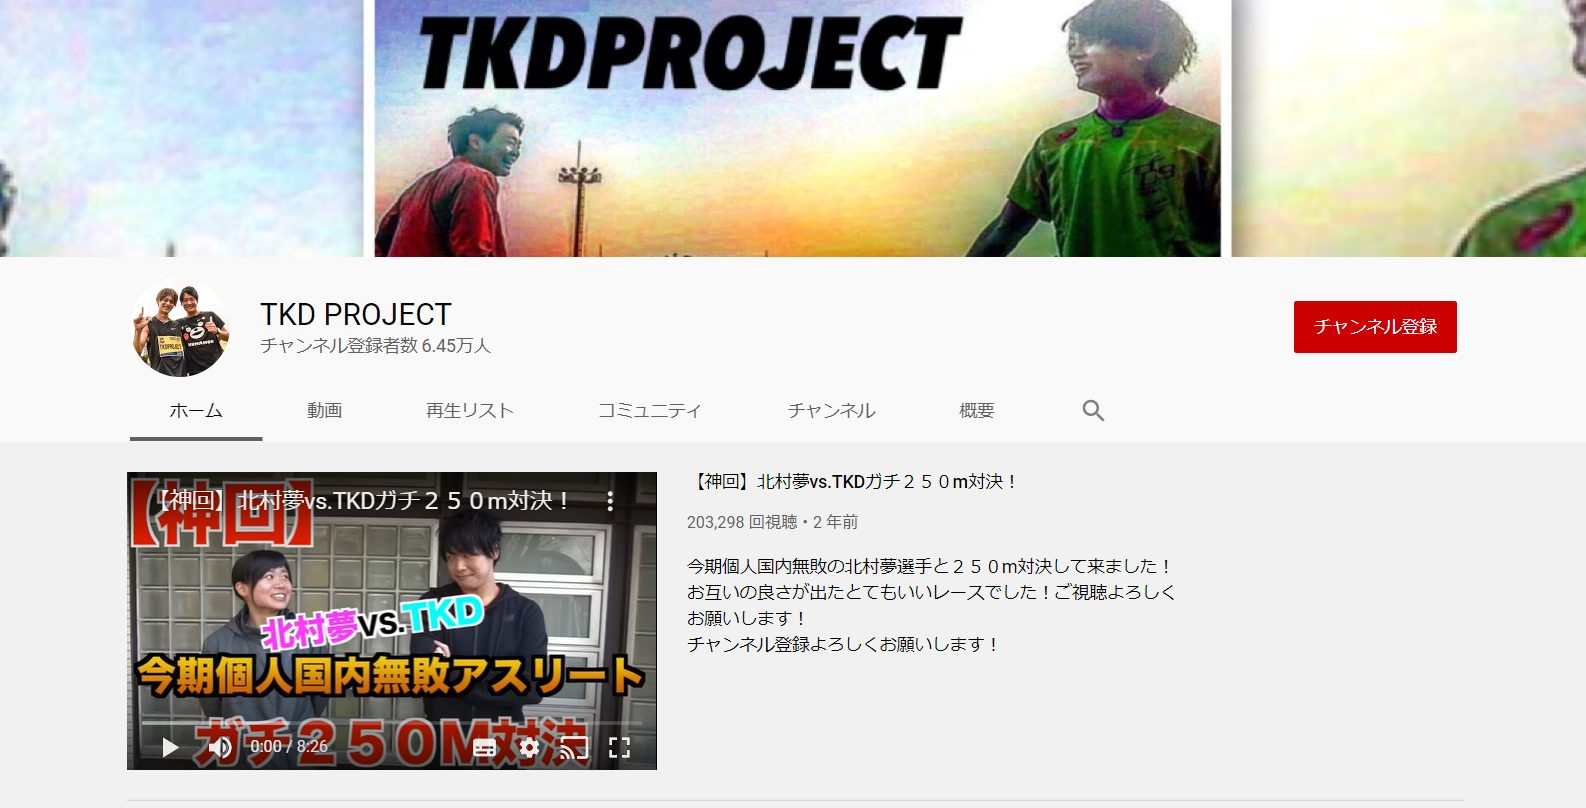 youtube-sports-influencer-tkd-project